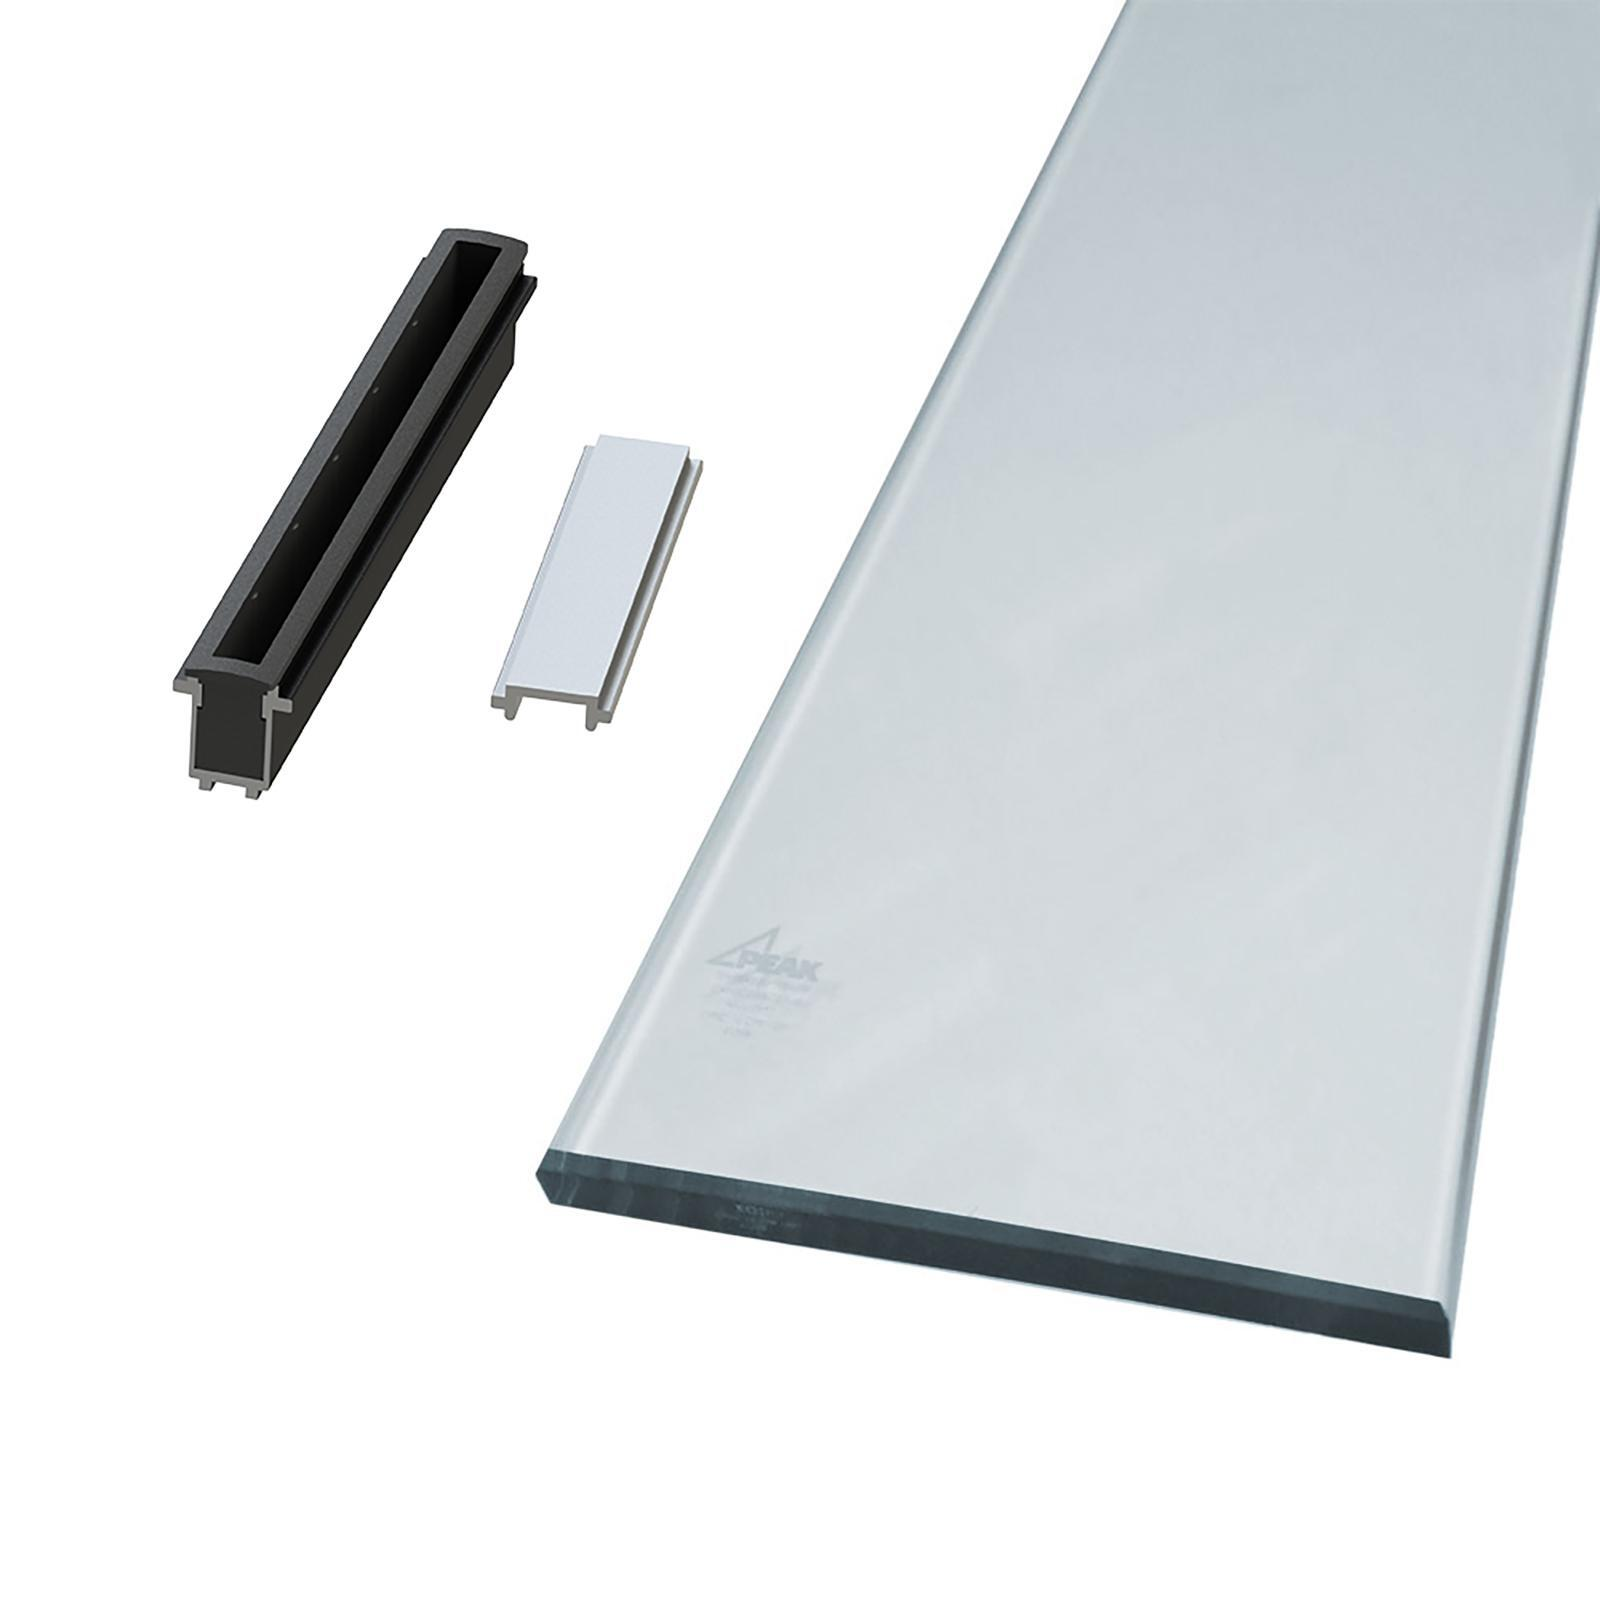 Peak Products 1800mm Silver Aluminium Balustrade Sectional Glass Kit With Clear Glass Panels